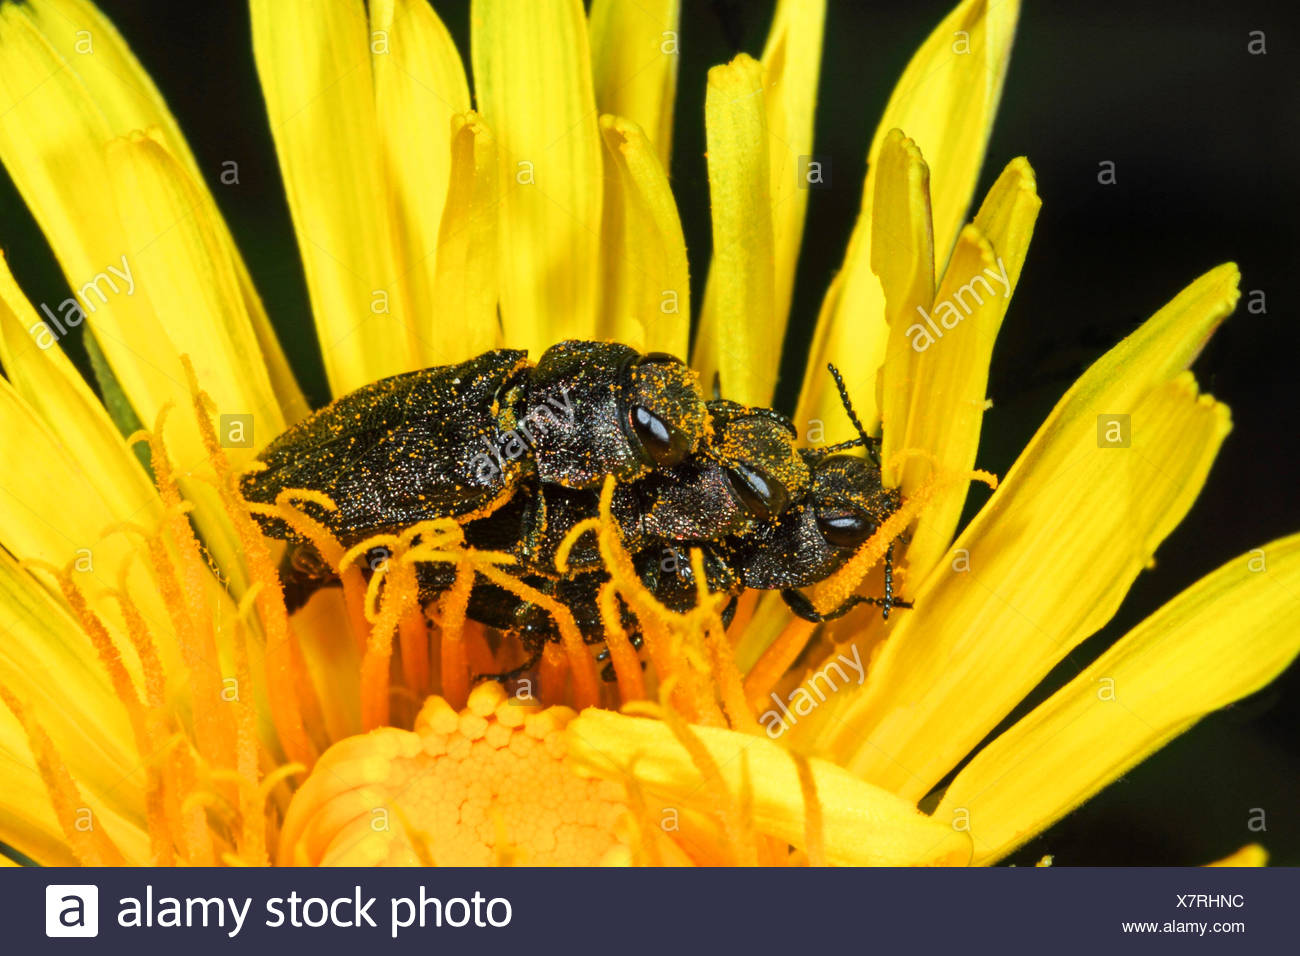 Metallic wood-boring beetle (Anthaxia quadripunctata, Anthaxia quadrimaculata, Melanthaxia quadripunctata), three Metallic wood-boring beetles sit on a flower, Germany - Stock Image